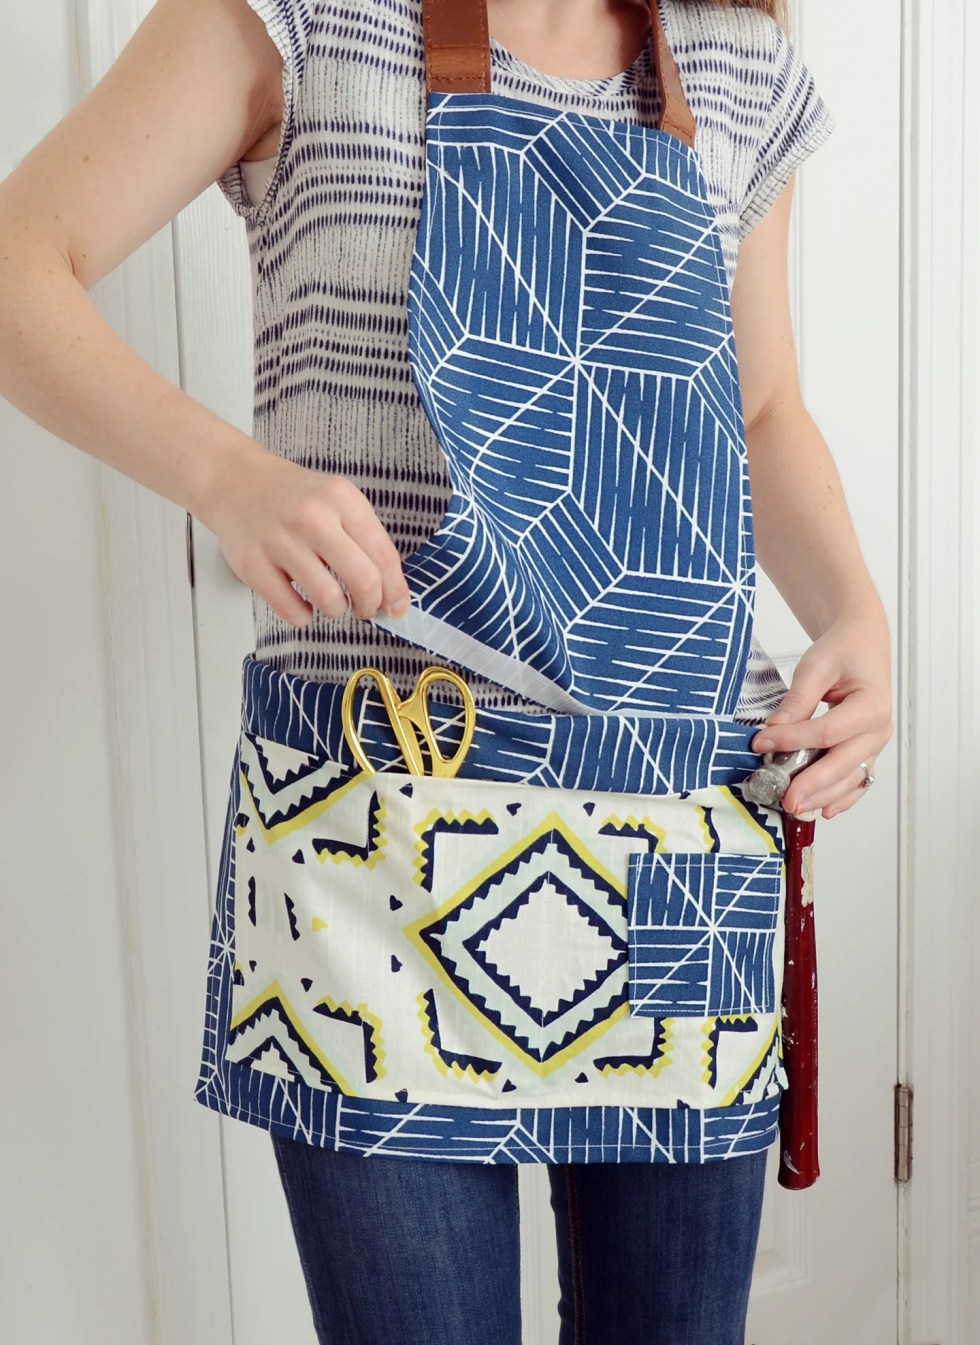 Make This! Crafter's Tool Belt With Detachable Apron   Curbly #diy #sewing